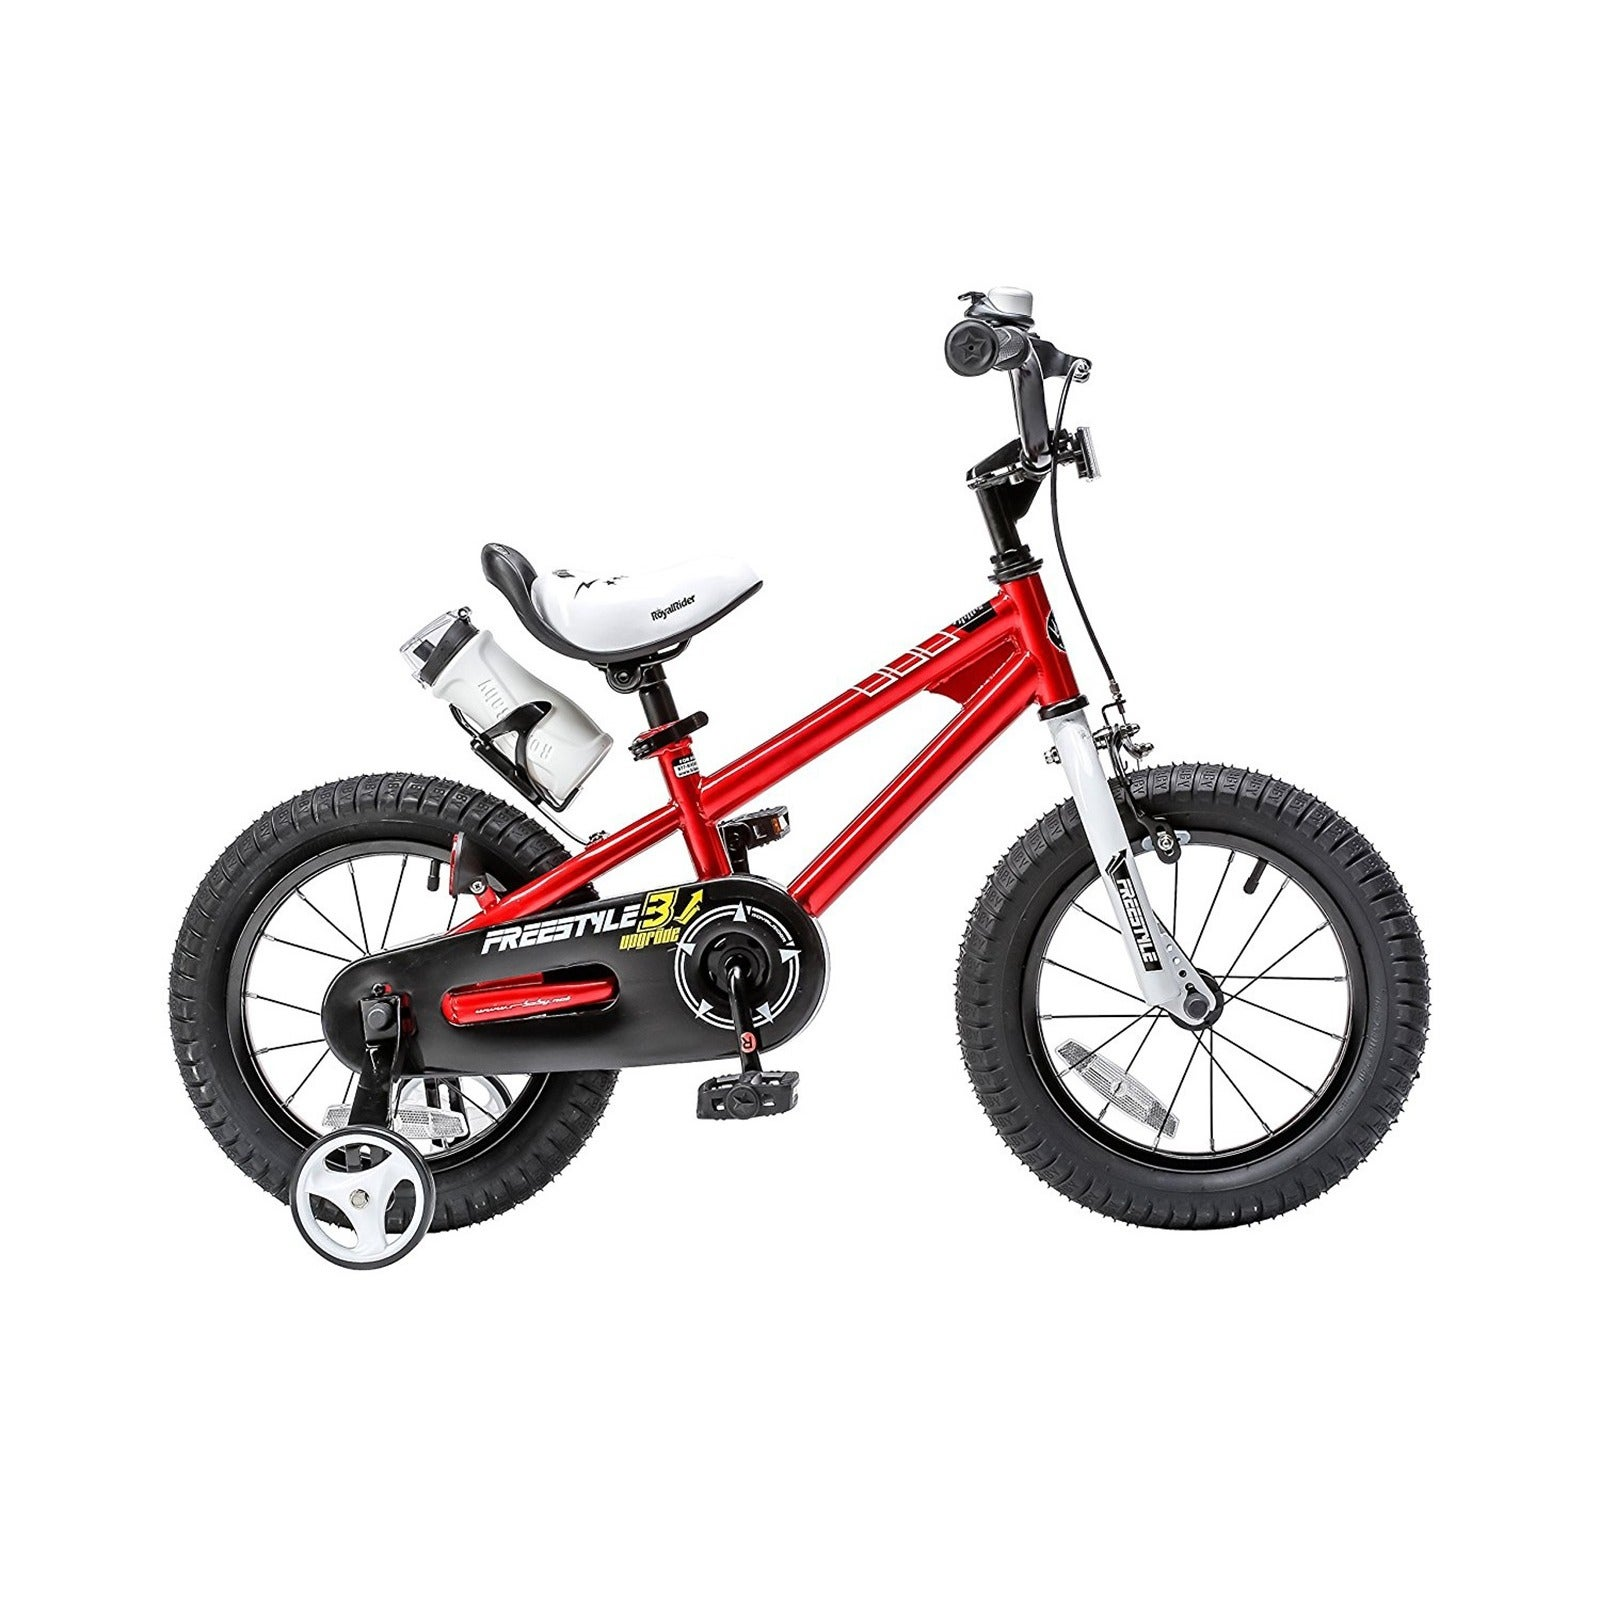 RoyalBaby BMX Freestyle 14-inch Kids' Bike with Training ...